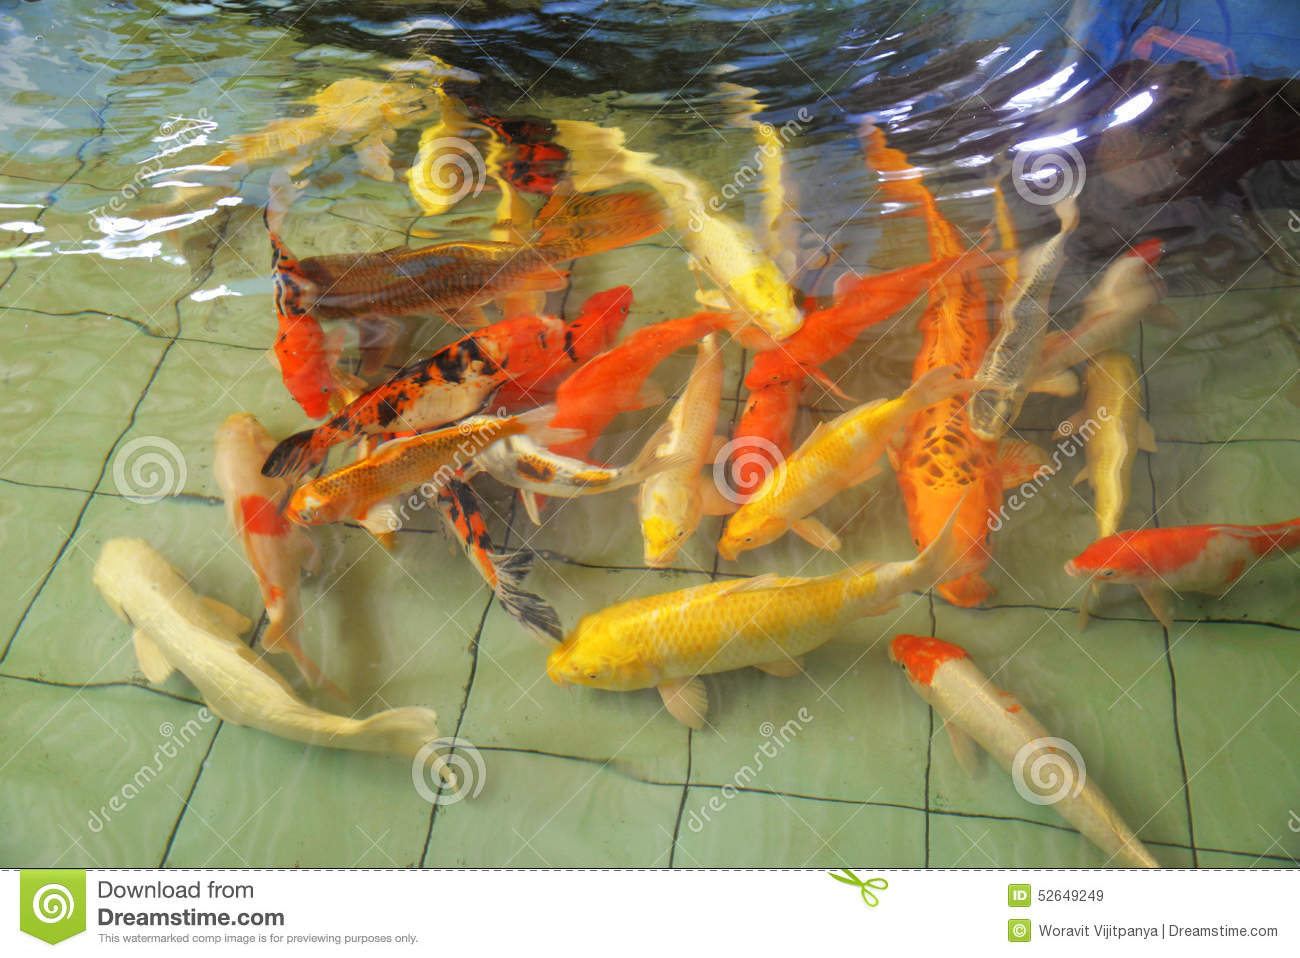 Koi fish stock photo image 52649249 for Pool koi aquatics ltd